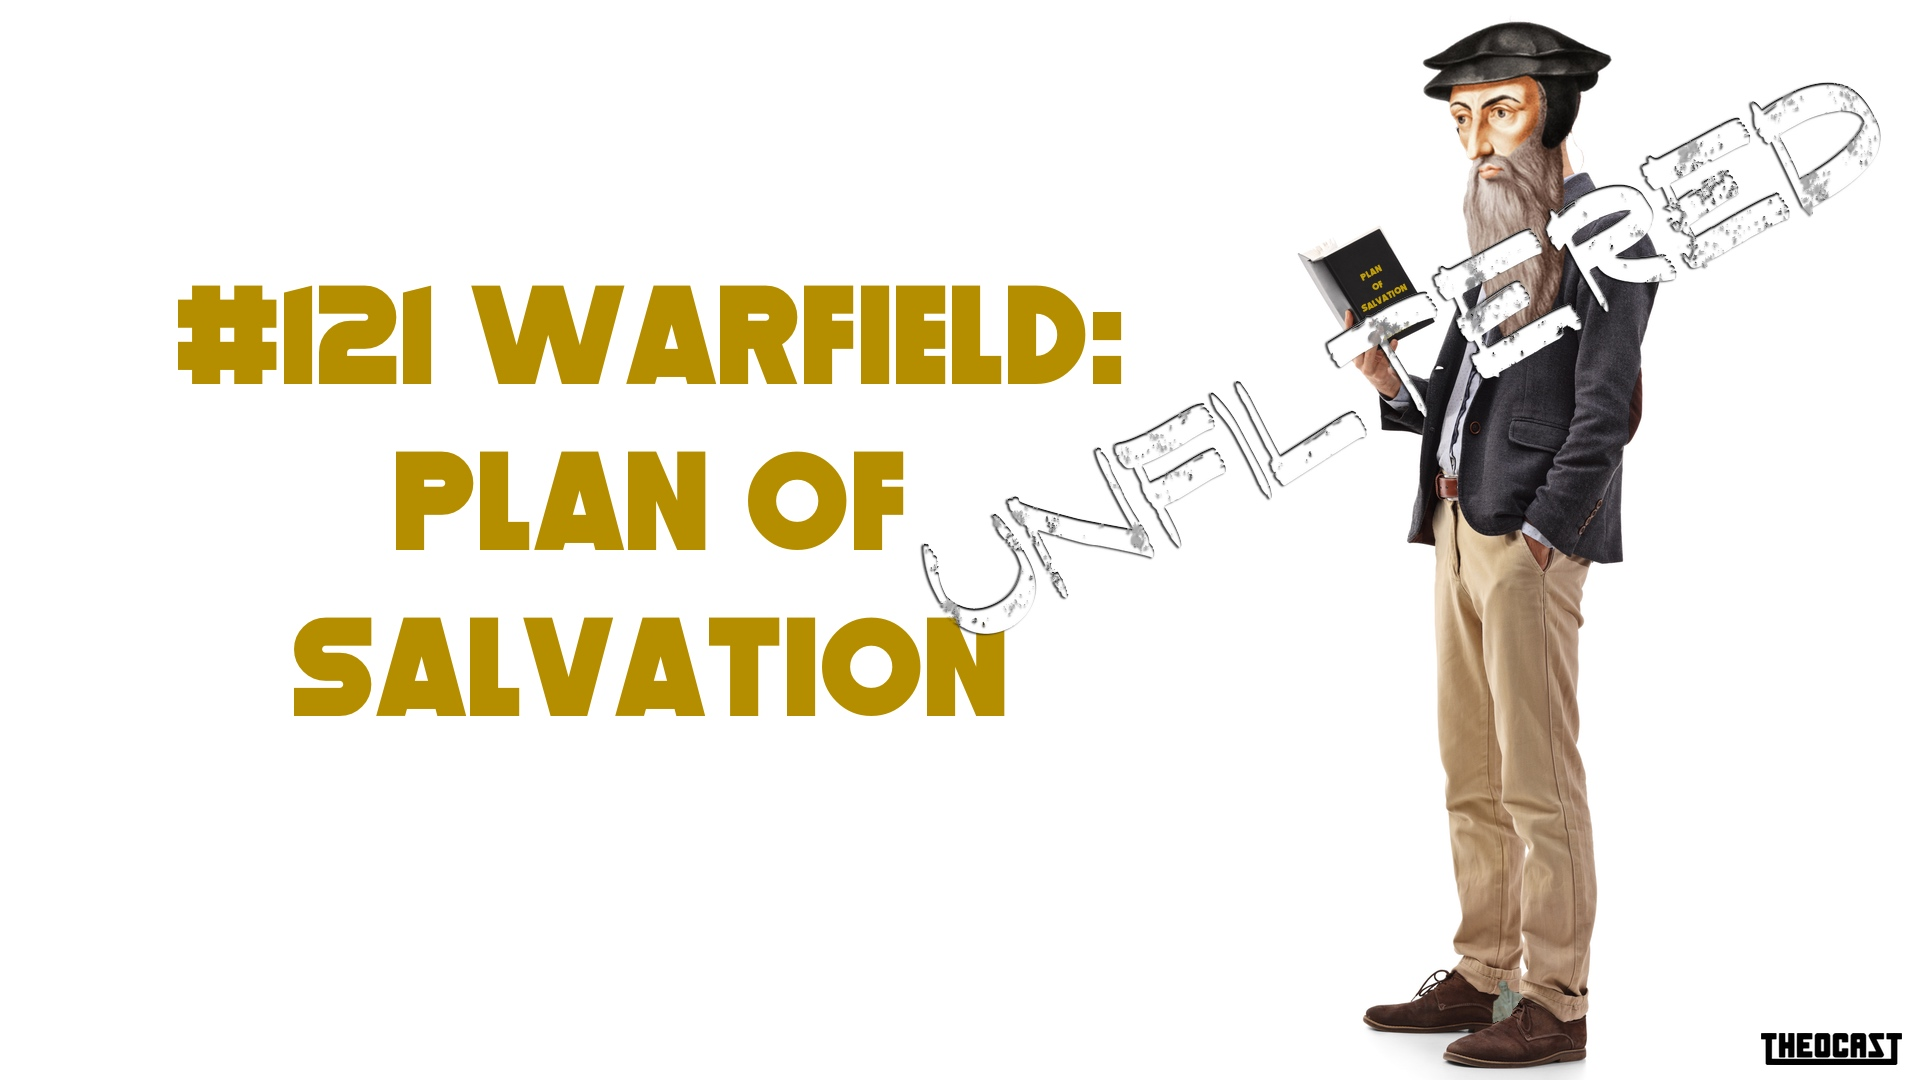 UNFILTERED#121 Warfield: Plan of Salvation